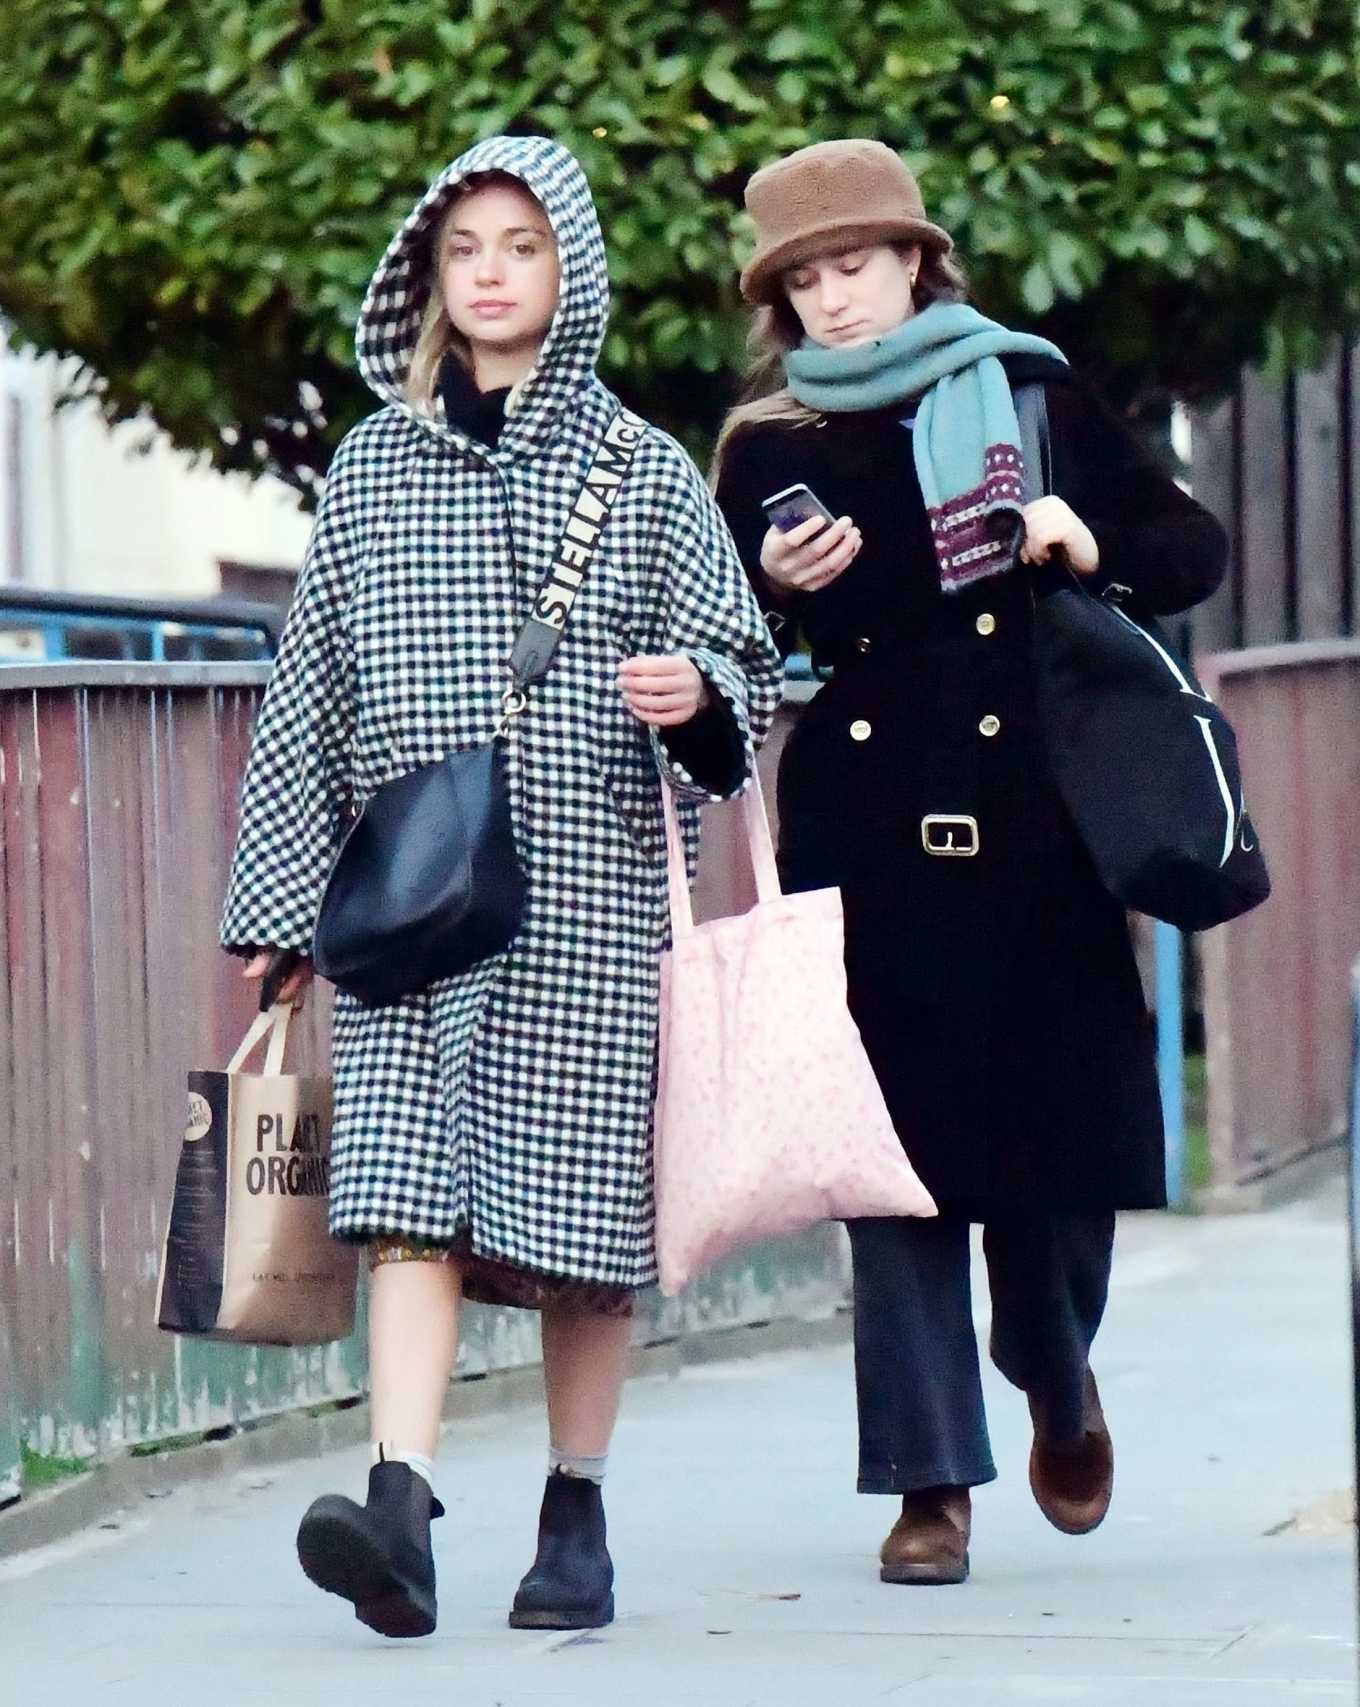 Amelia Windsor 2020 : Amelia Windsor – Looks stylis while out in the trendy area of Notting Hill-12